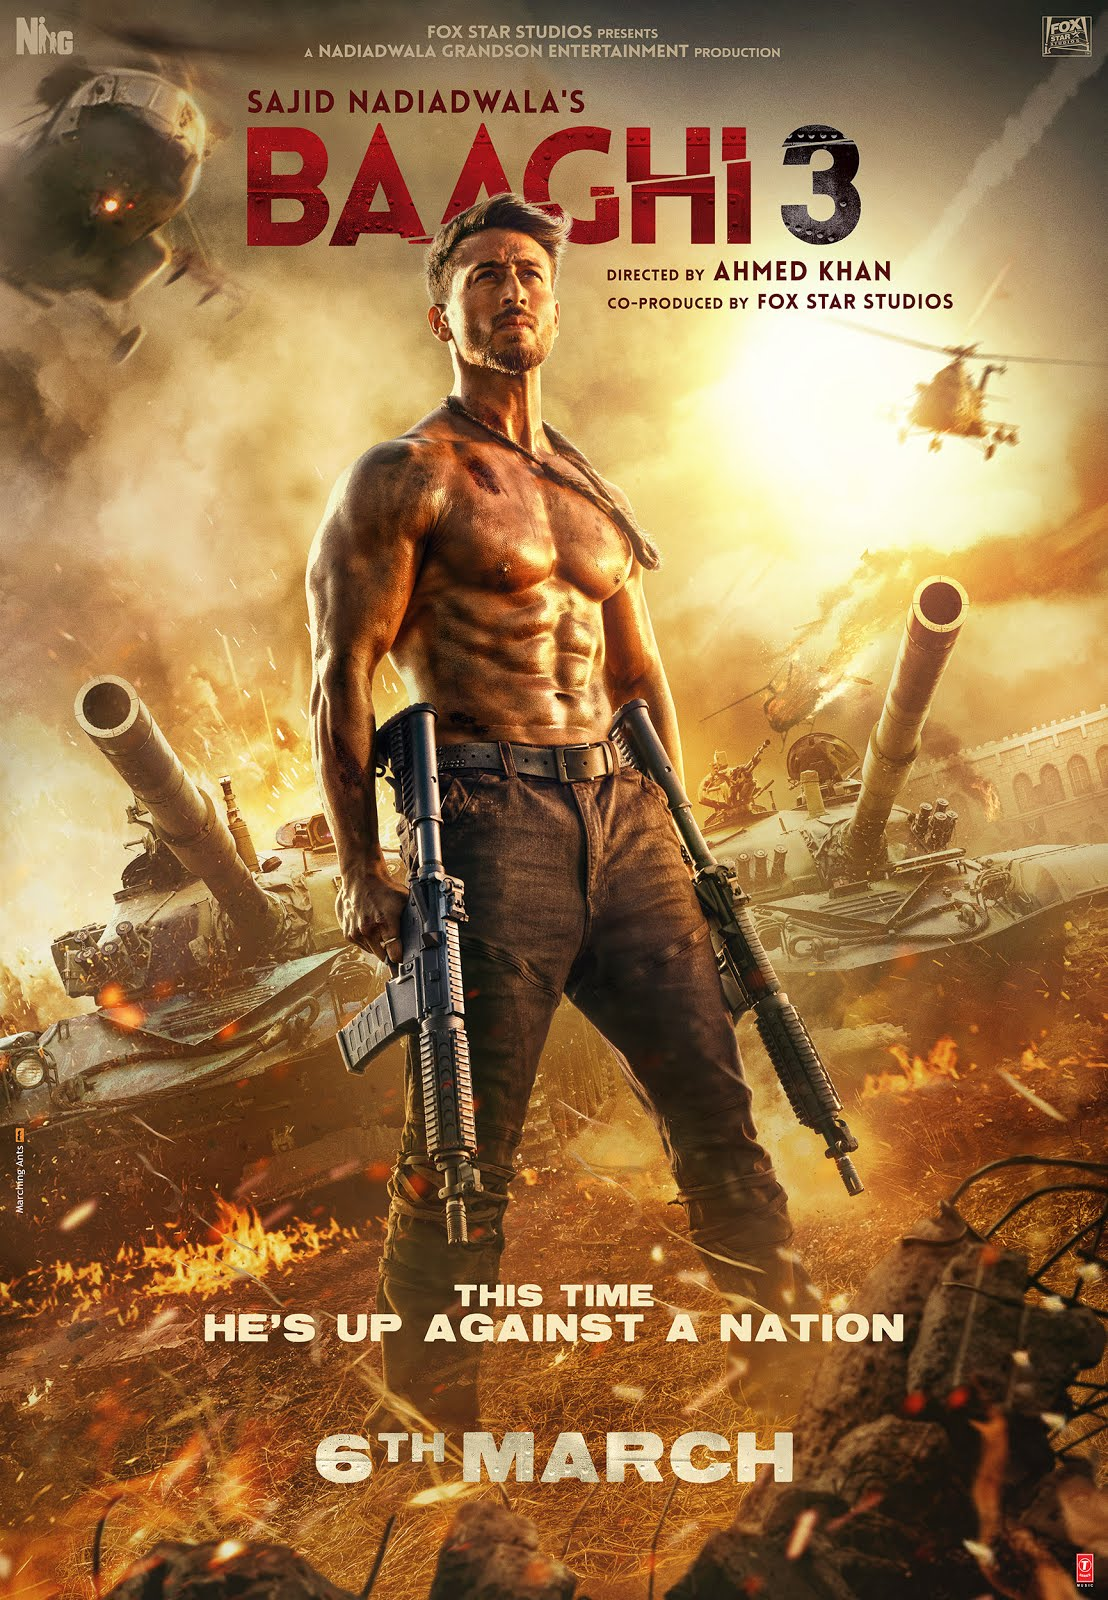 Baaghi 3 (2020) Hindi Movie 720p HDRip 900MB ESubs Free Download